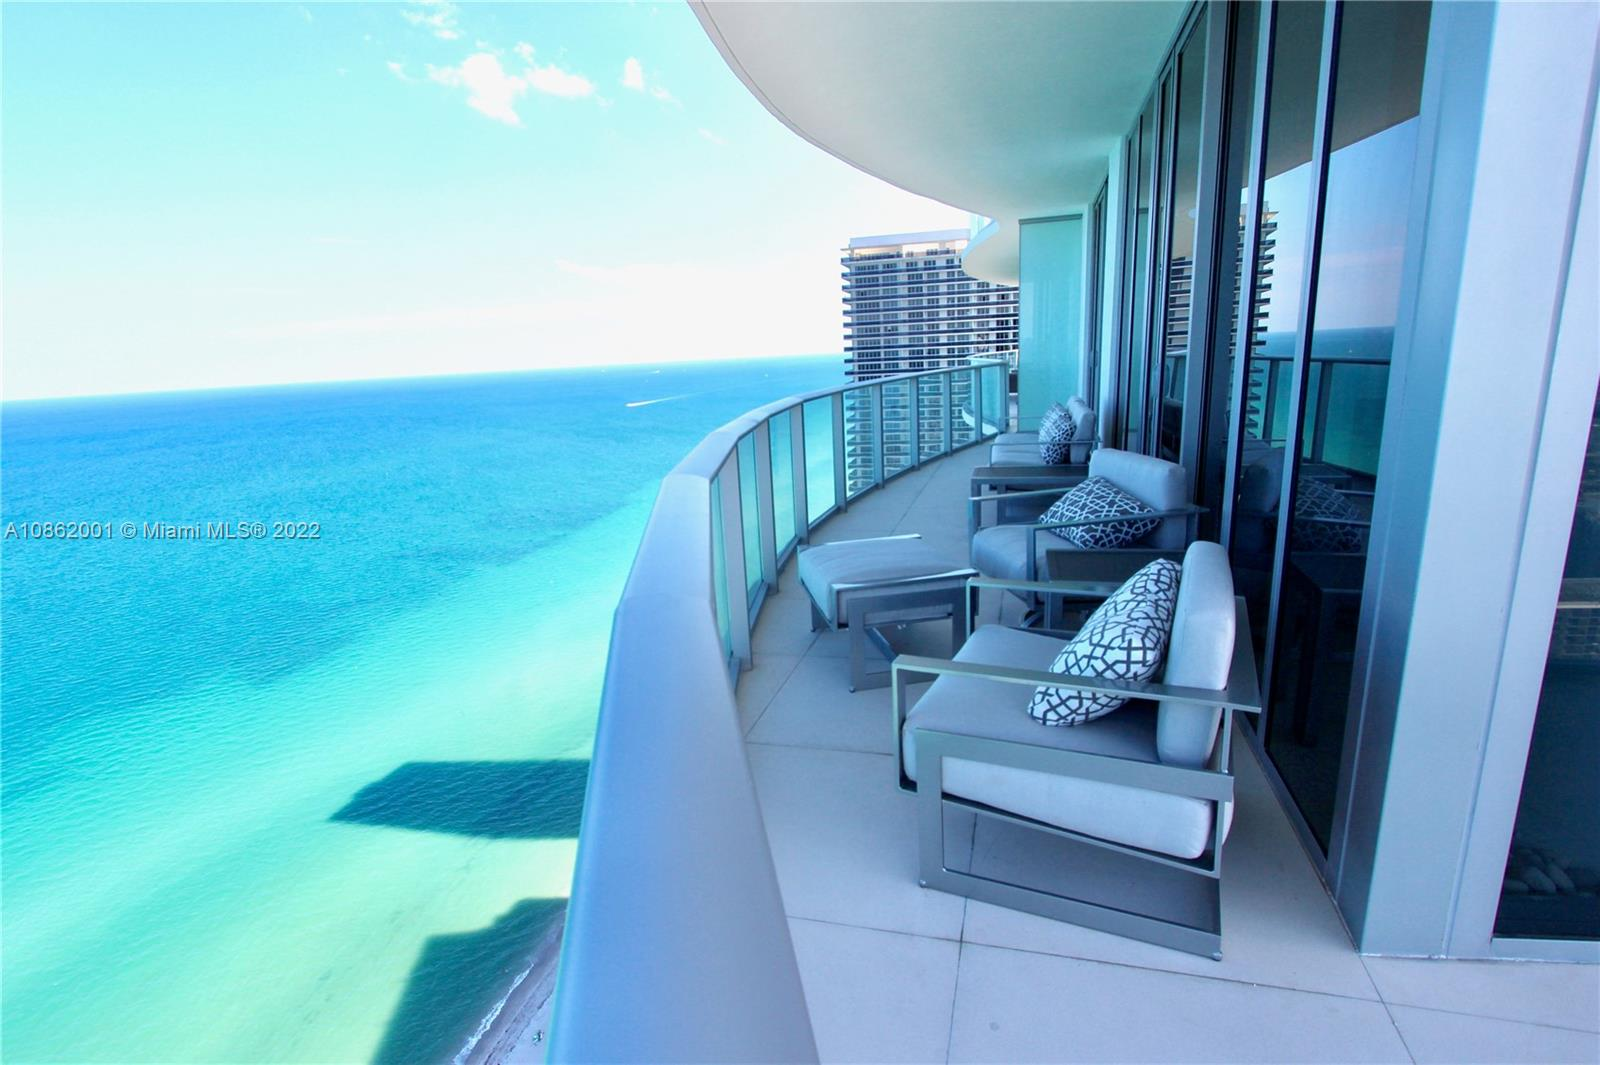 BEST UNIT IN THE BUILDING! Direct & unobstructed Ocean/Intracoastal Views from this spectacular 2B/2B Residence corner unit at Hyde Resort & Residences. Remodeled w luxury finishes high quality calacata porcelain floors,Quartz countertop,motorized Lutron roller shades -sunscreen and black-out, Lutron lighting system,safe-box, Sonos system,Nest thermostat and Nest-Yale entrance lock.Fully furnished & equipped with top of the line appliances. Impact glasses from ceiling to floor wrapped by a large balcony w confortable outdoor furniture to enjoy the stunning views. Elevator with private hall. Beach Club Membership included w/beach service and restaurant. Amenities: fitness center, 2 infinity edge ocean view pools, private cabanas, full service spa, 24room service. 2020 AAA four diamond award